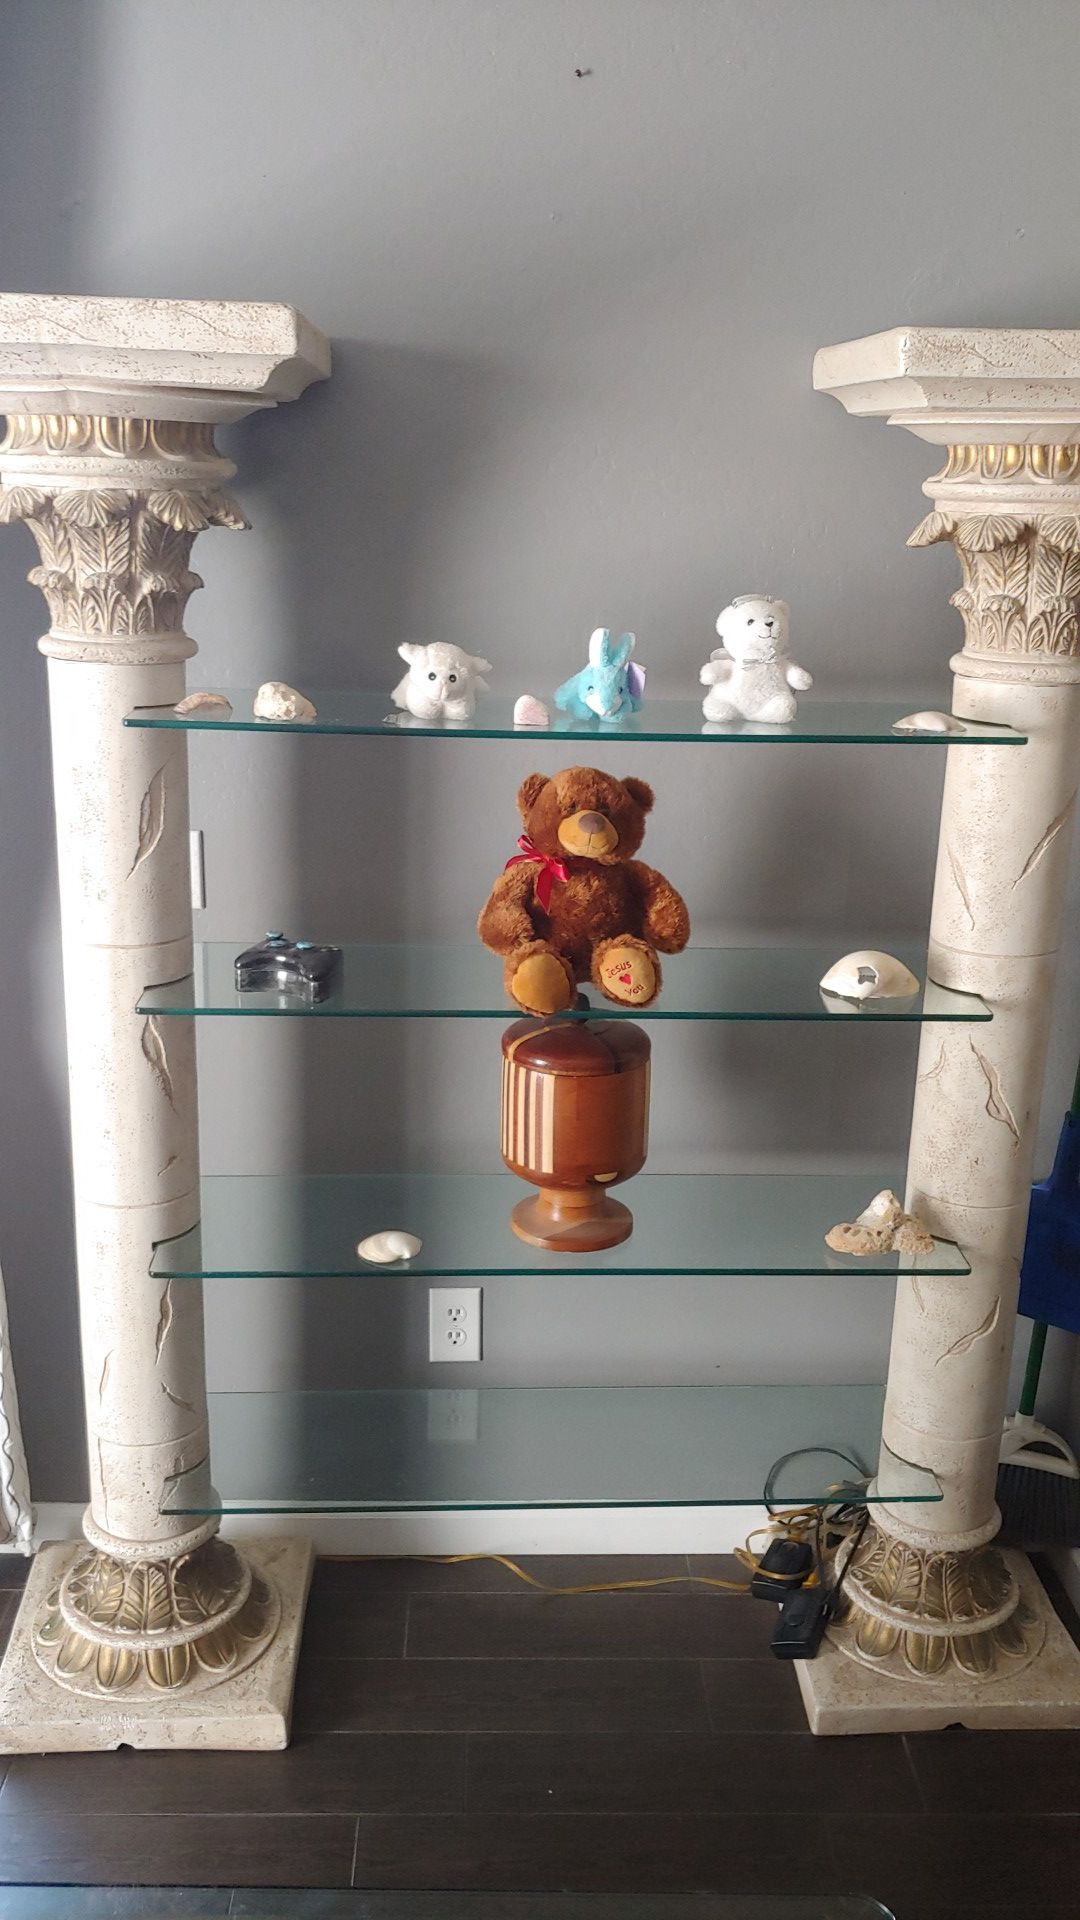 Glass table and chairs and glass shelves